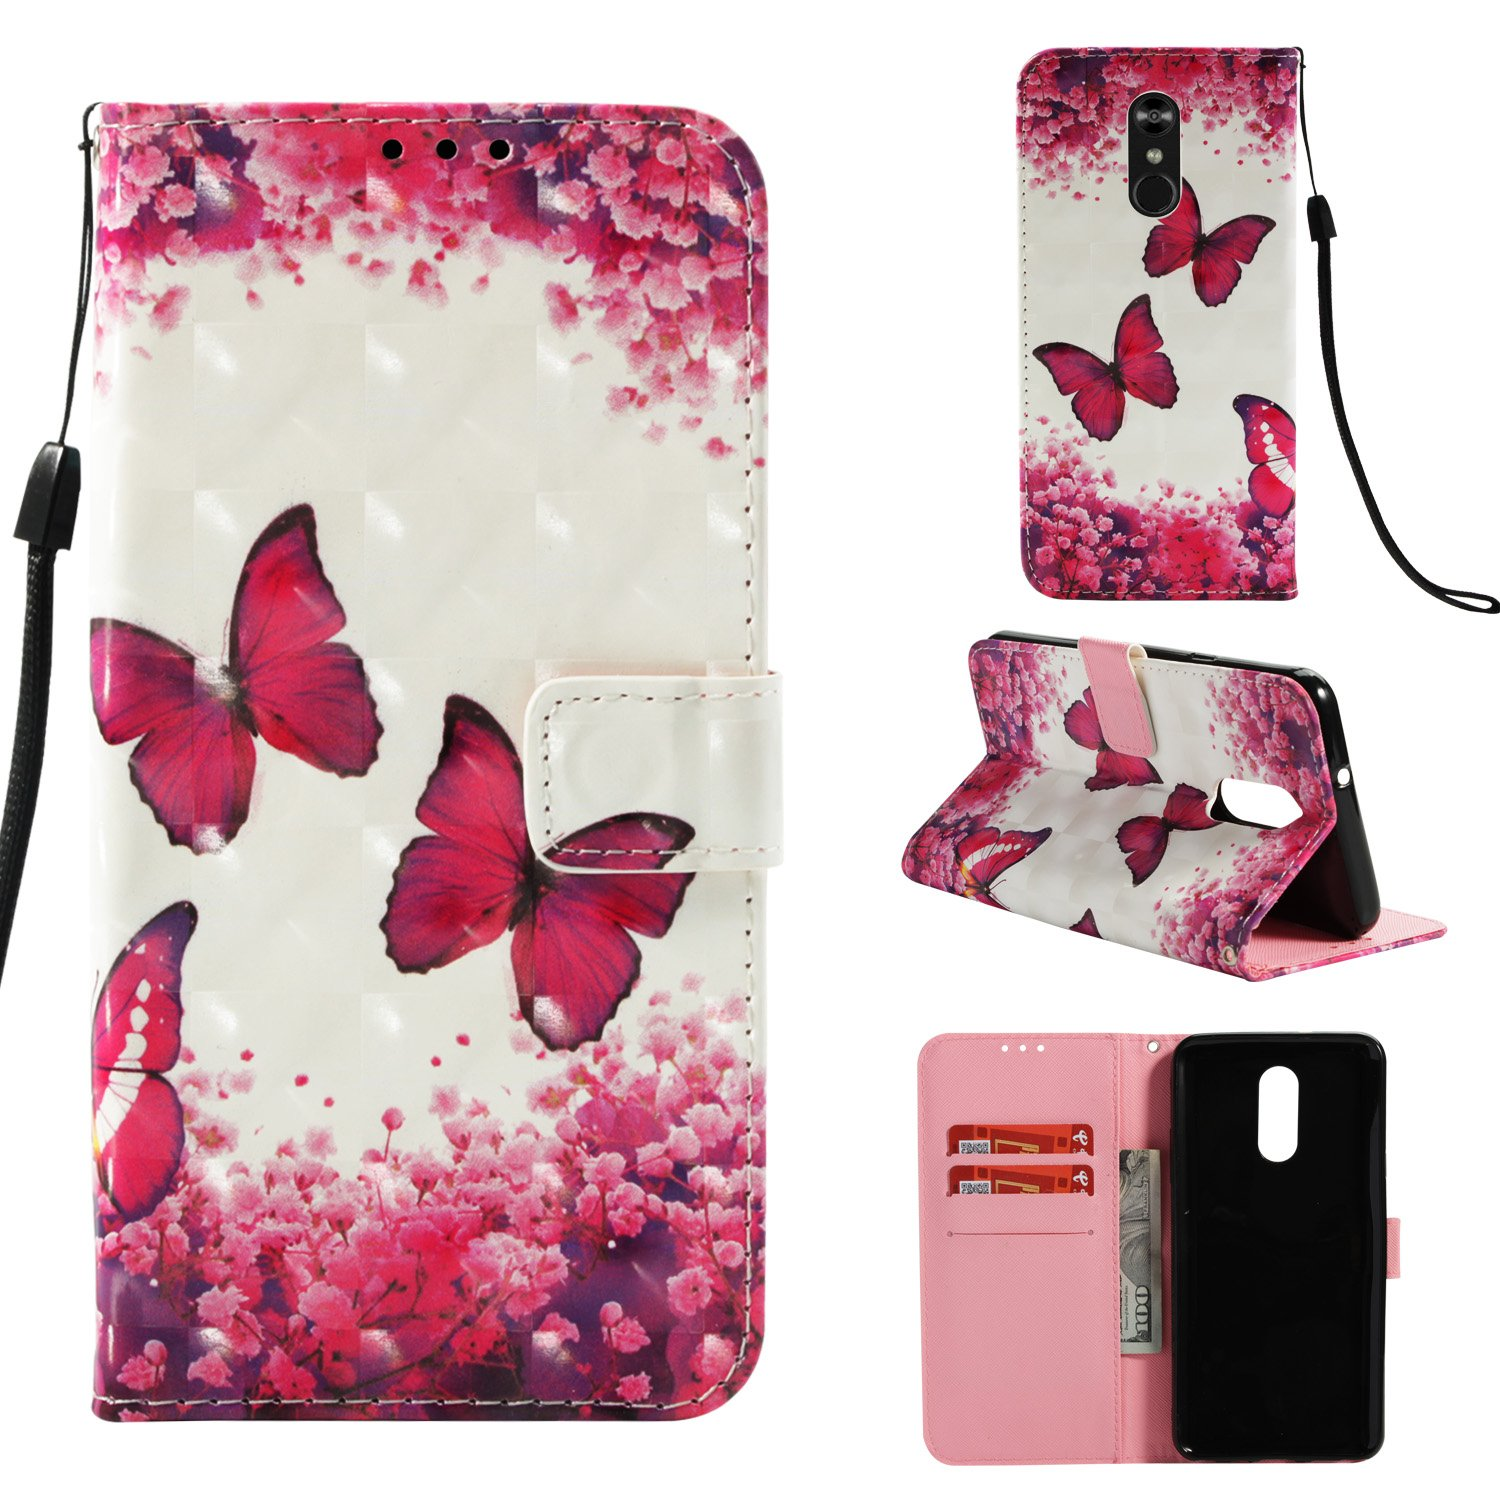 Shinyzone Wallet Flip Cover for LG Stylo 4/LG Q Stylus,Magenta Butterfly 3D Colorful Painting 2 in 1 Book Style Leather Case with Card Holder and Magnetic Buckle Stand Cover